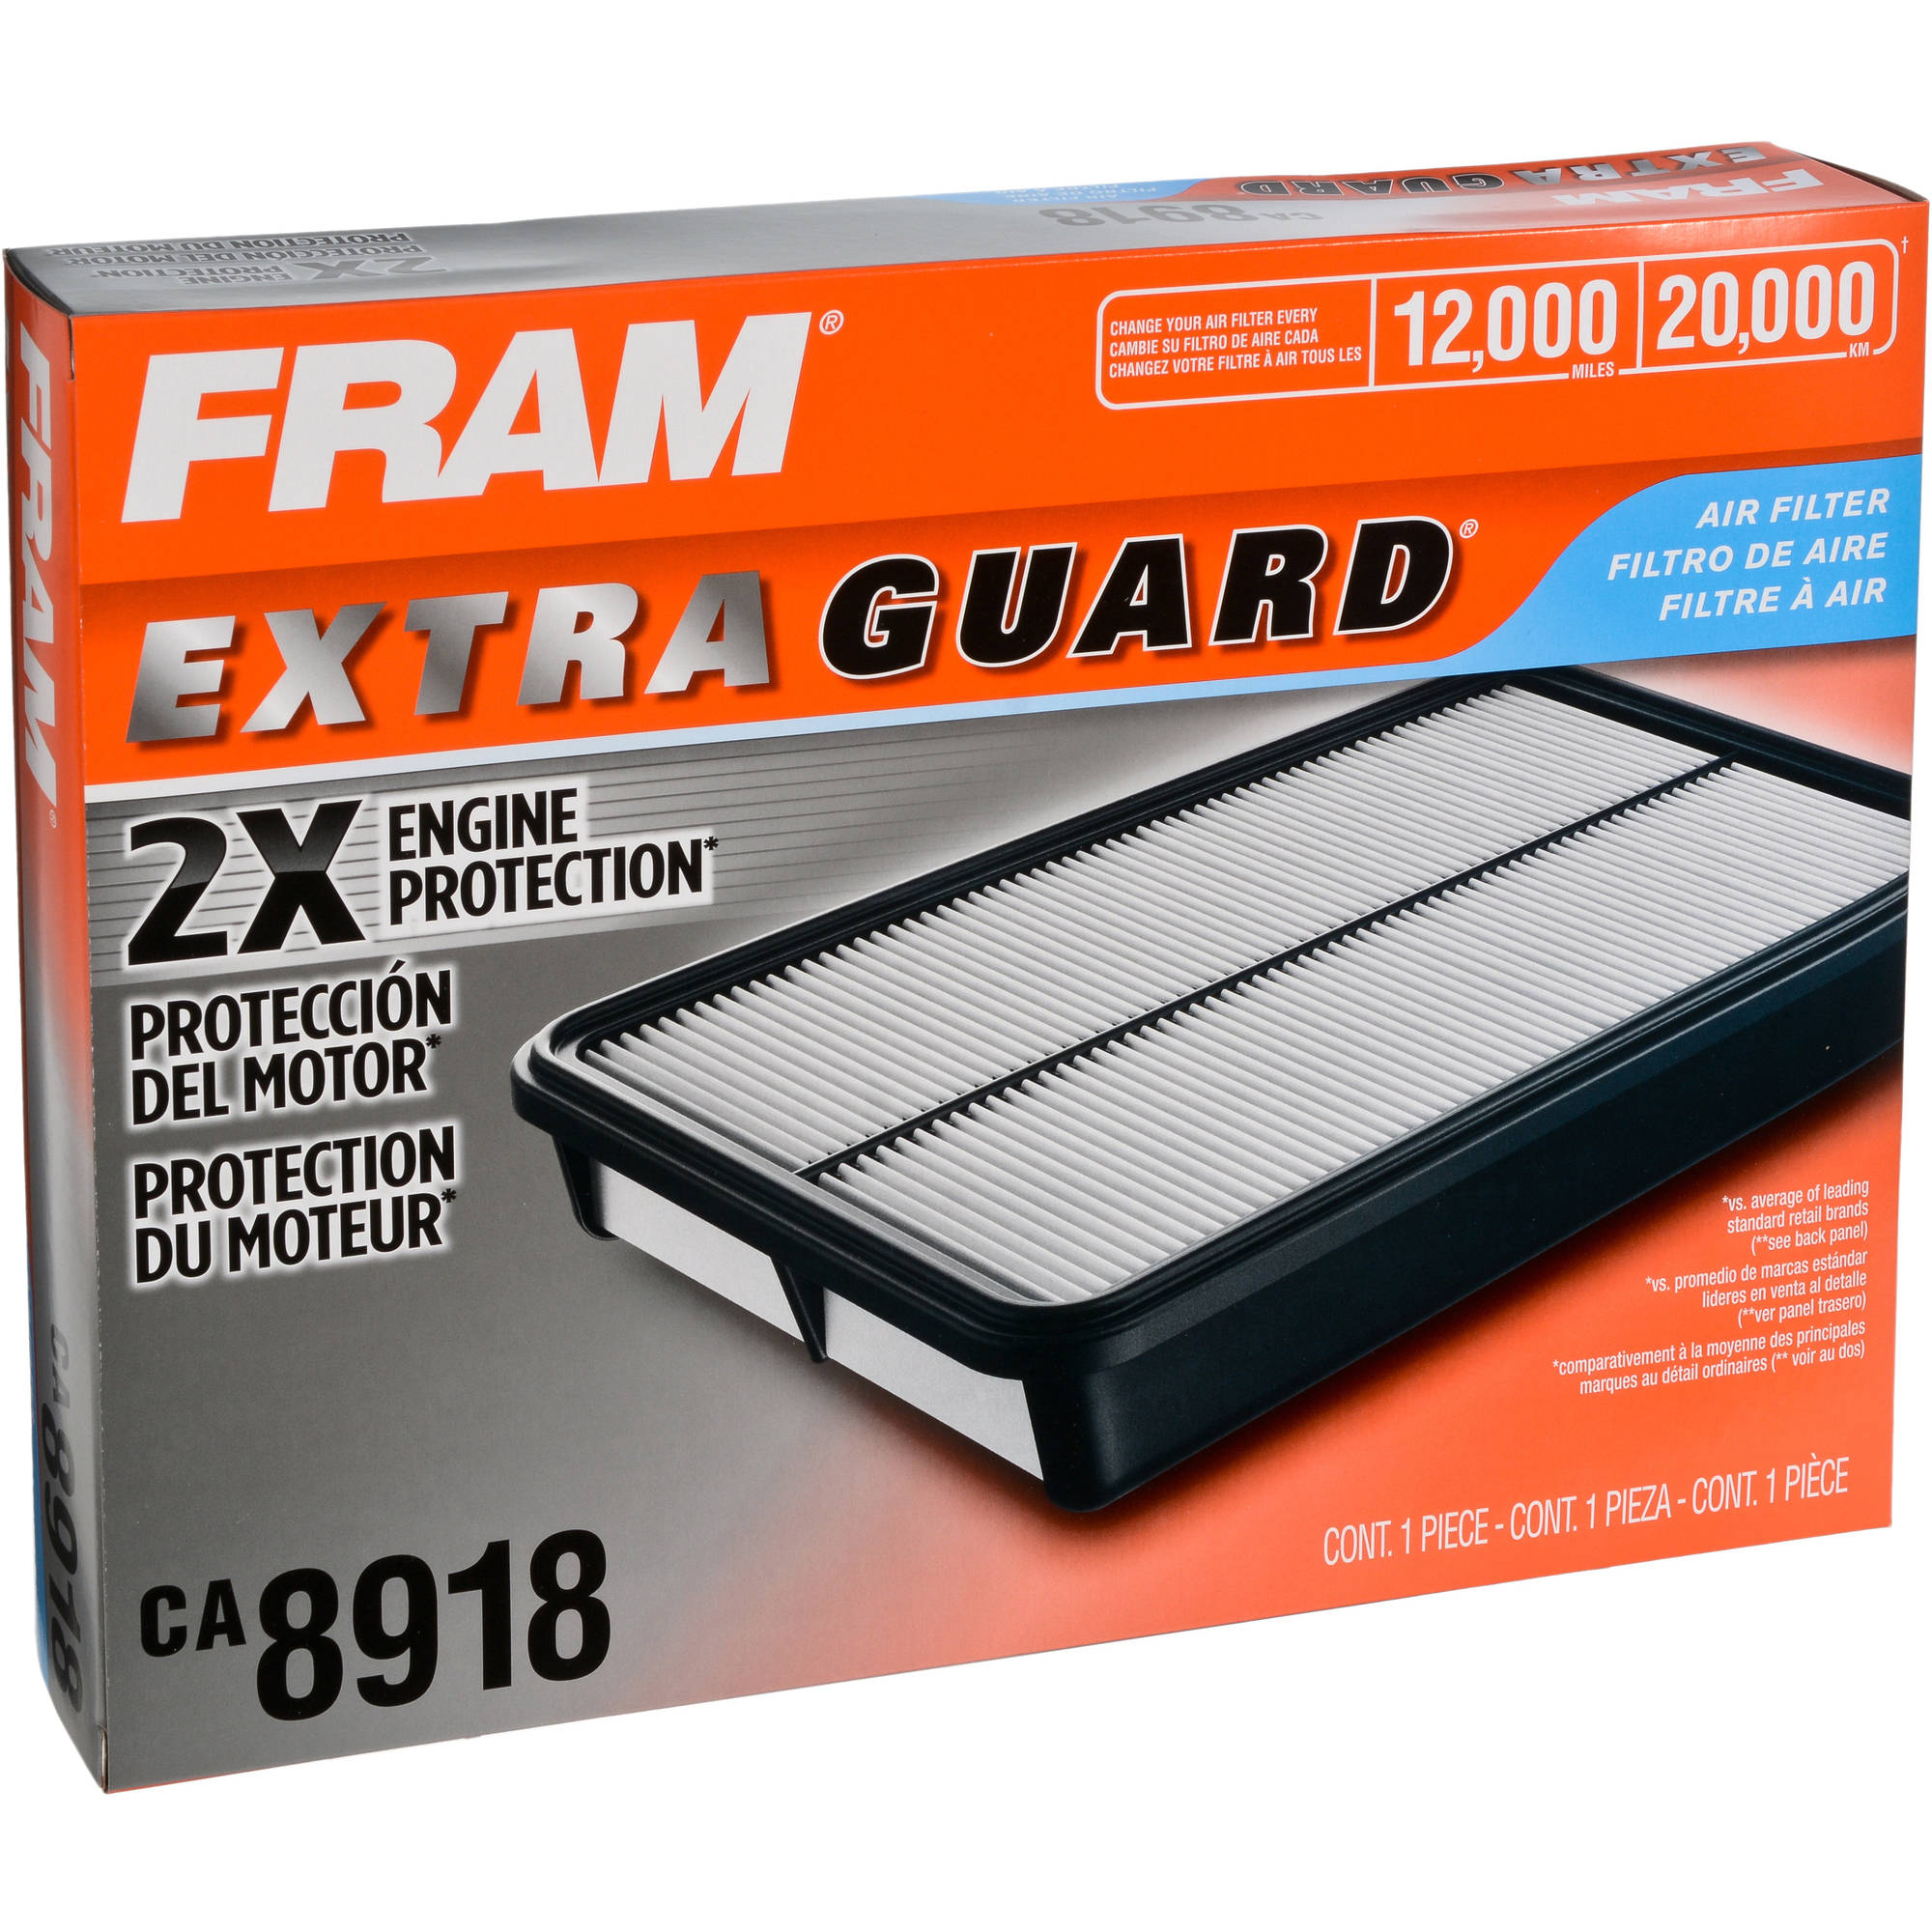 FRAM Extra Guard Air Filter, CA8918